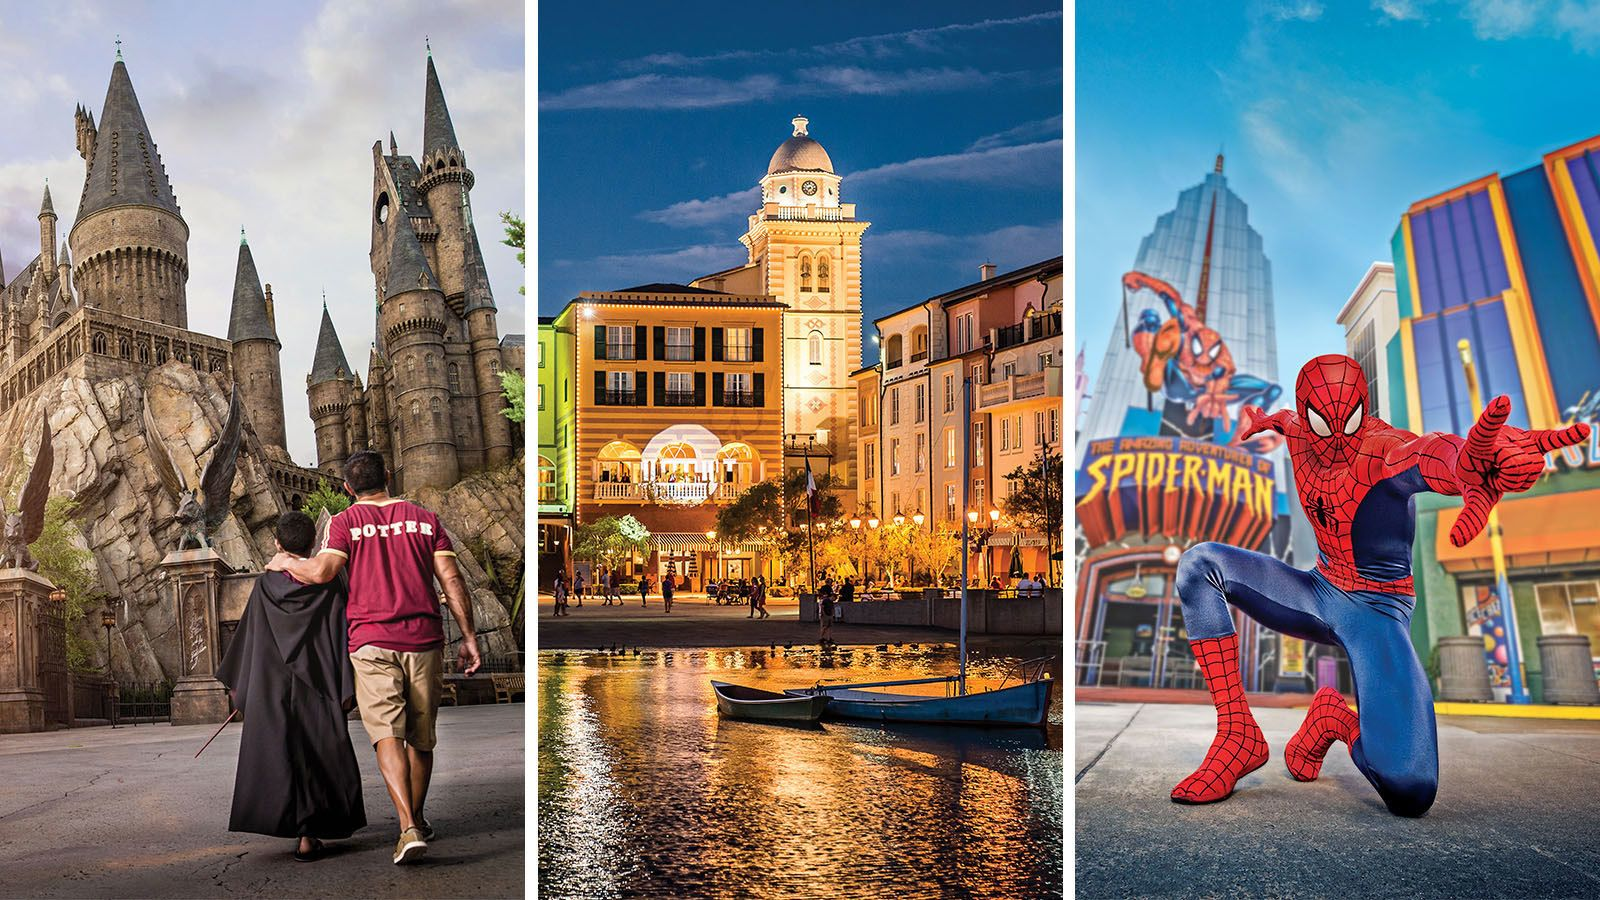 Combo image of attractions at Universal Studios Orlando